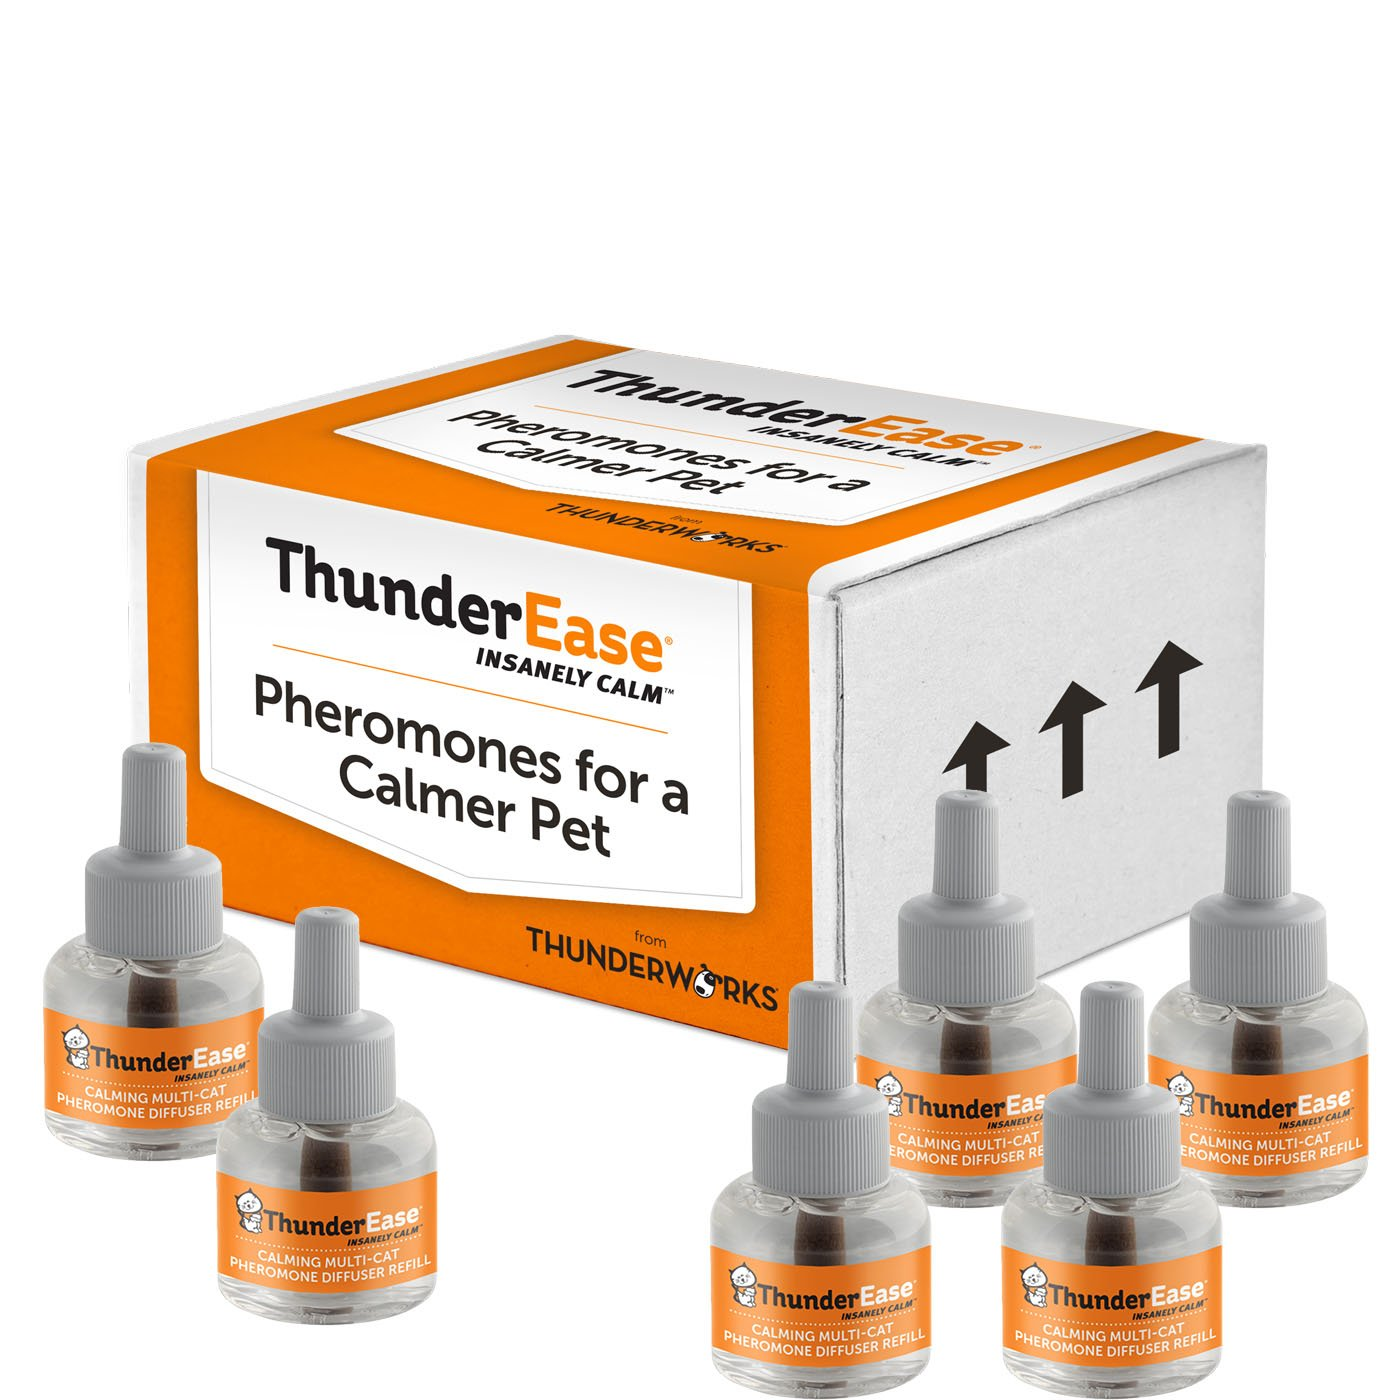 ThunderEase Multicat Calming Pheromone Diffuser Refill | Powered by FELIWAY | Reduce Cat Conflict, Tension and Fighting (180 Day Supply) by ThunderEase